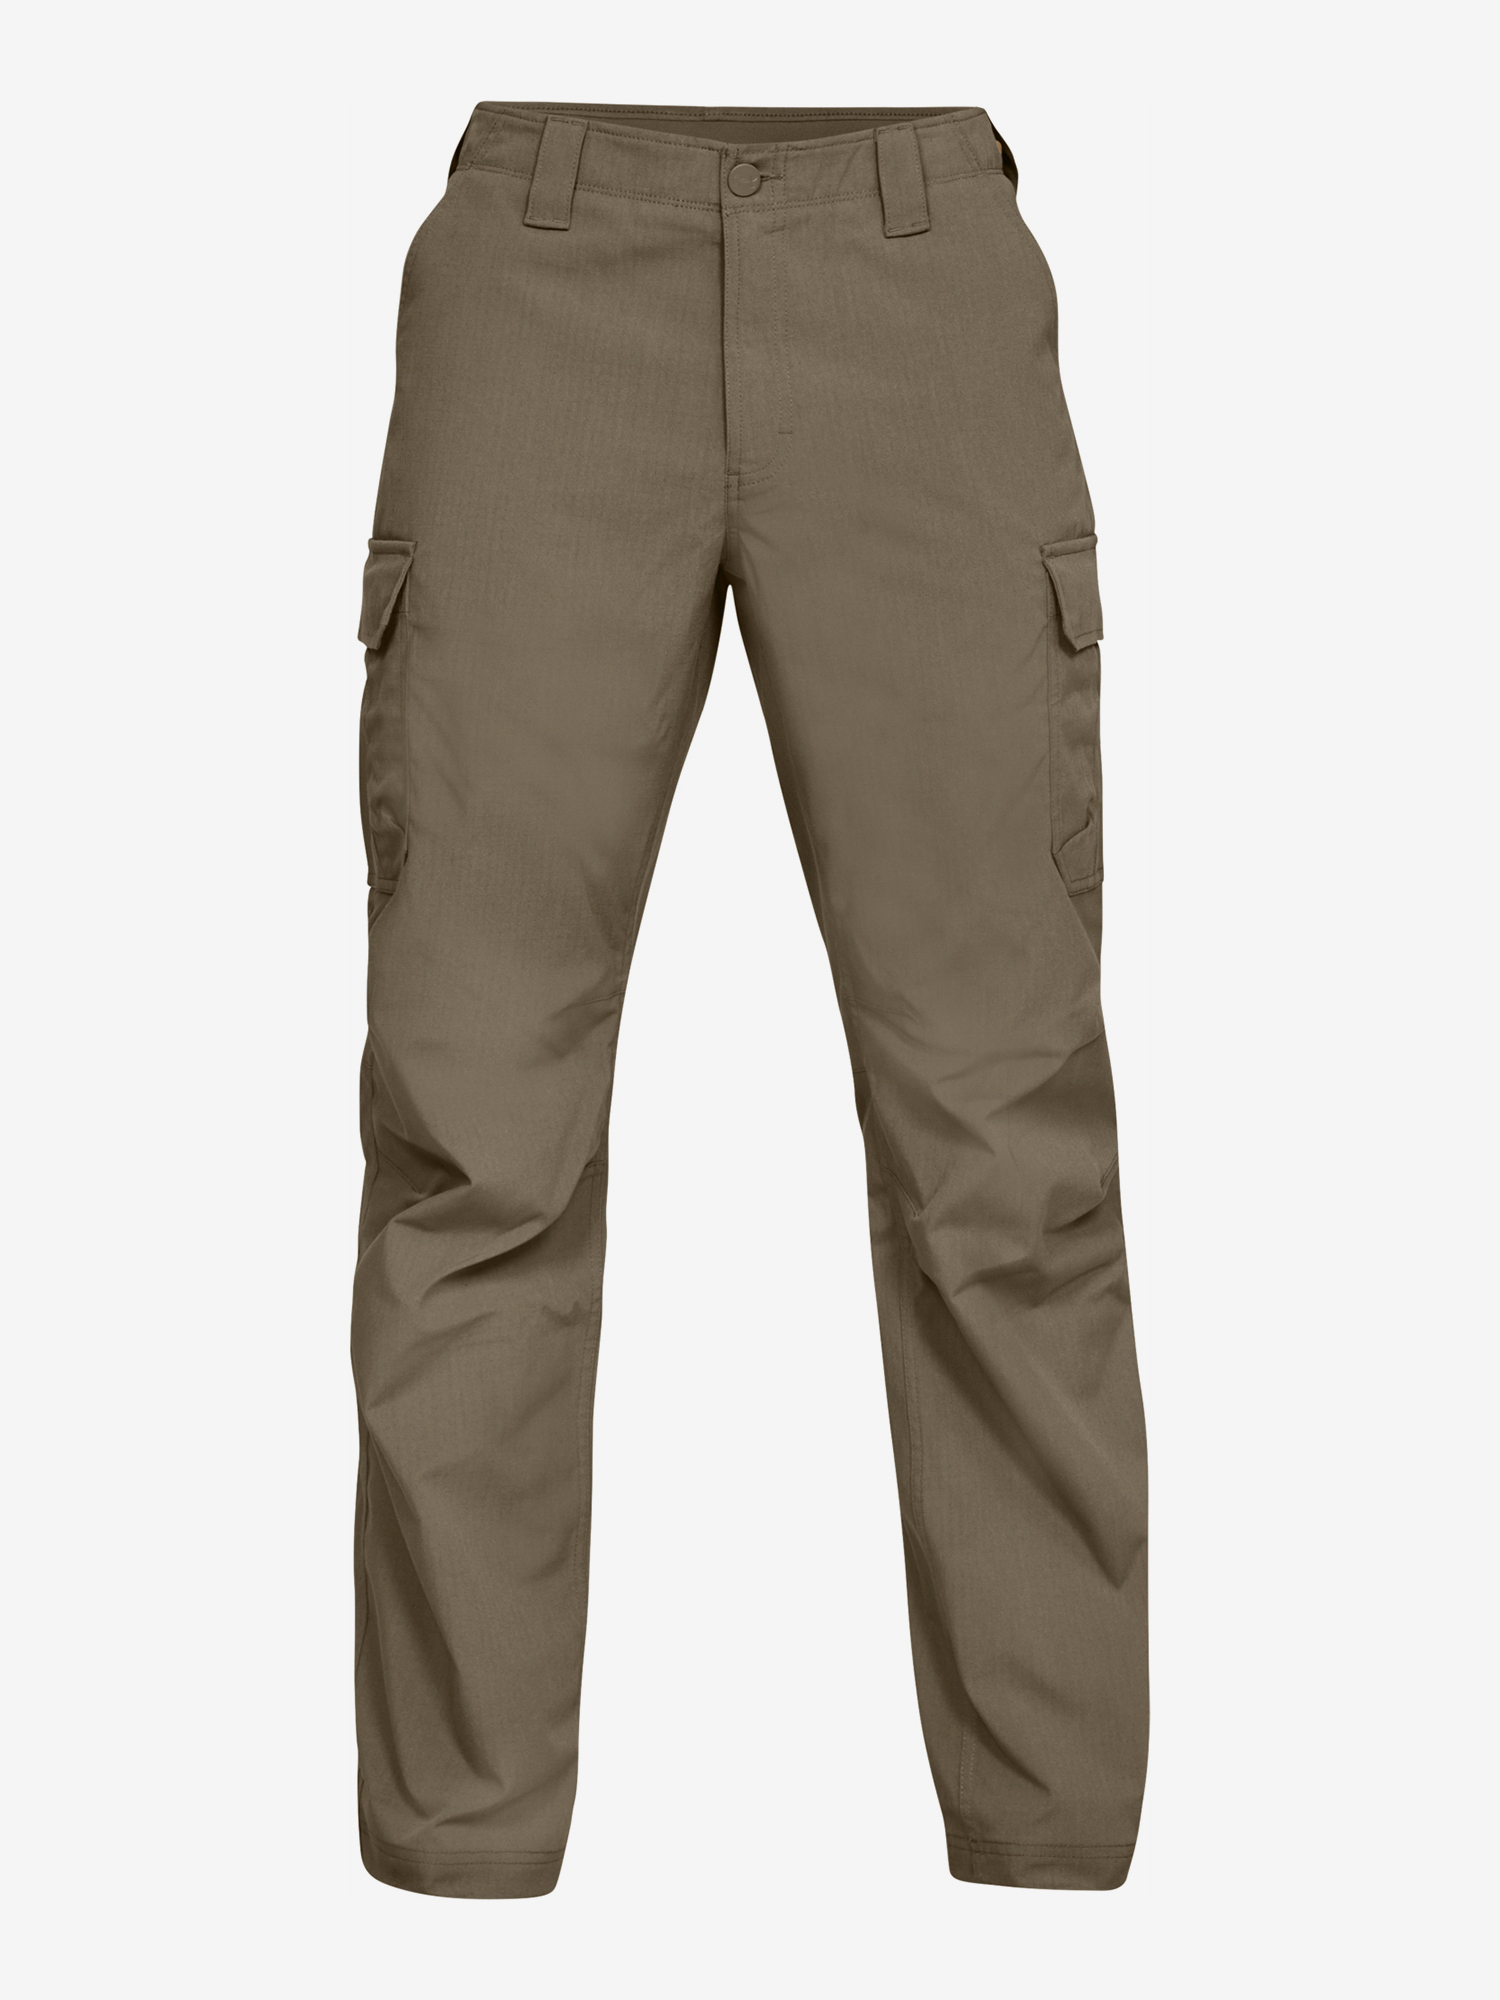 Nohavice Under Armour Tac Patrol Pant II-BRN (3)